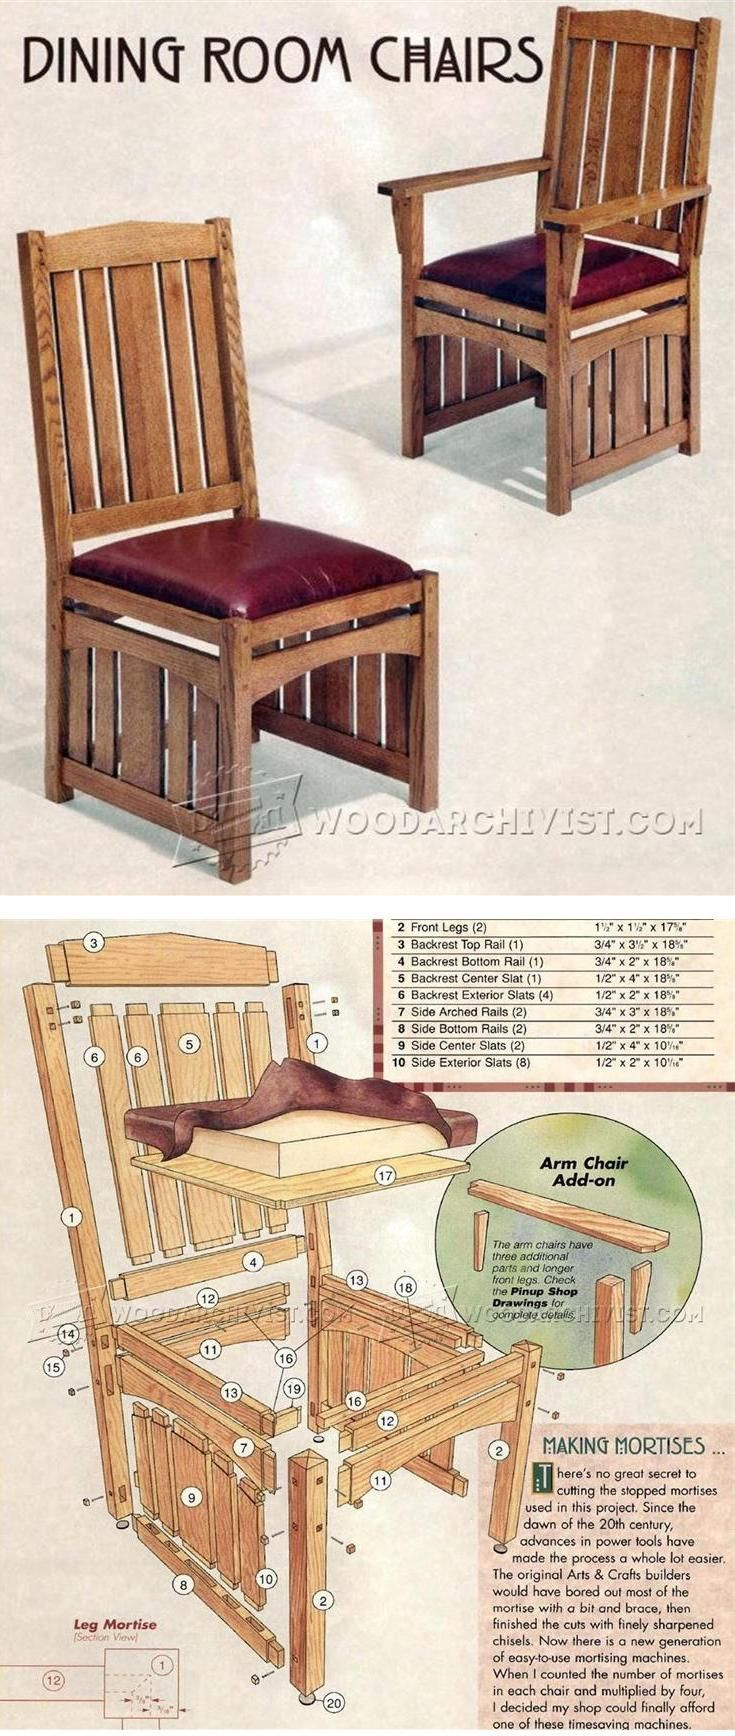 How to build a wingback chair my woodworking plans - Dining Room Chairs Plans Furniture Plans And Projects Woodarchivist Com